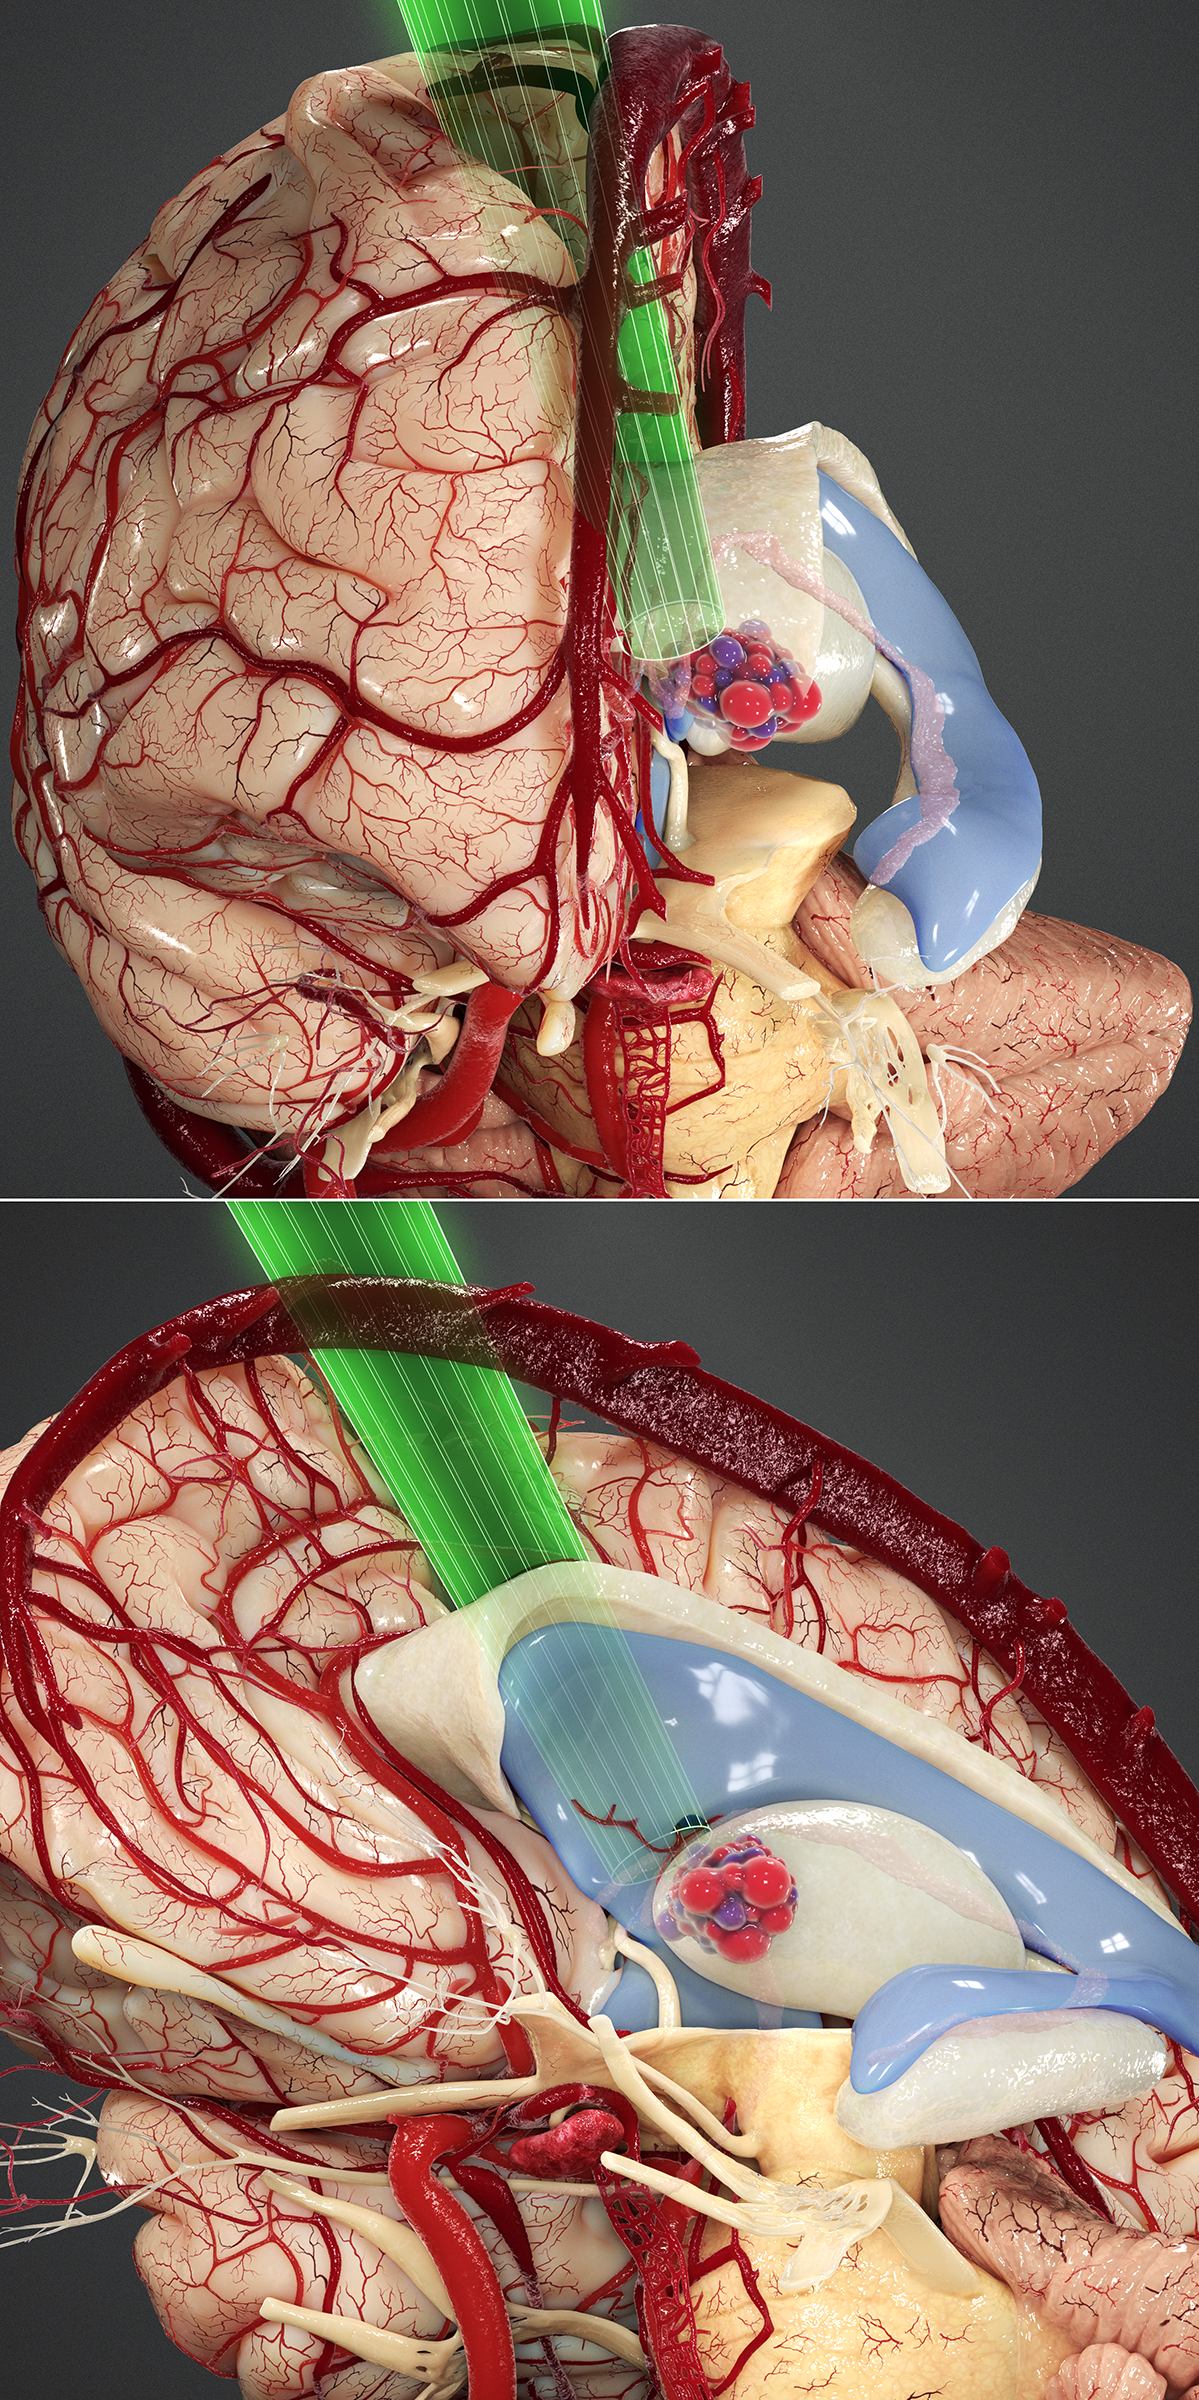 Figure 18: The more lateral anterior thalamic tumors are also approached via the contralateral transcallosal expanded transforaminal transvenous transchoroidal route